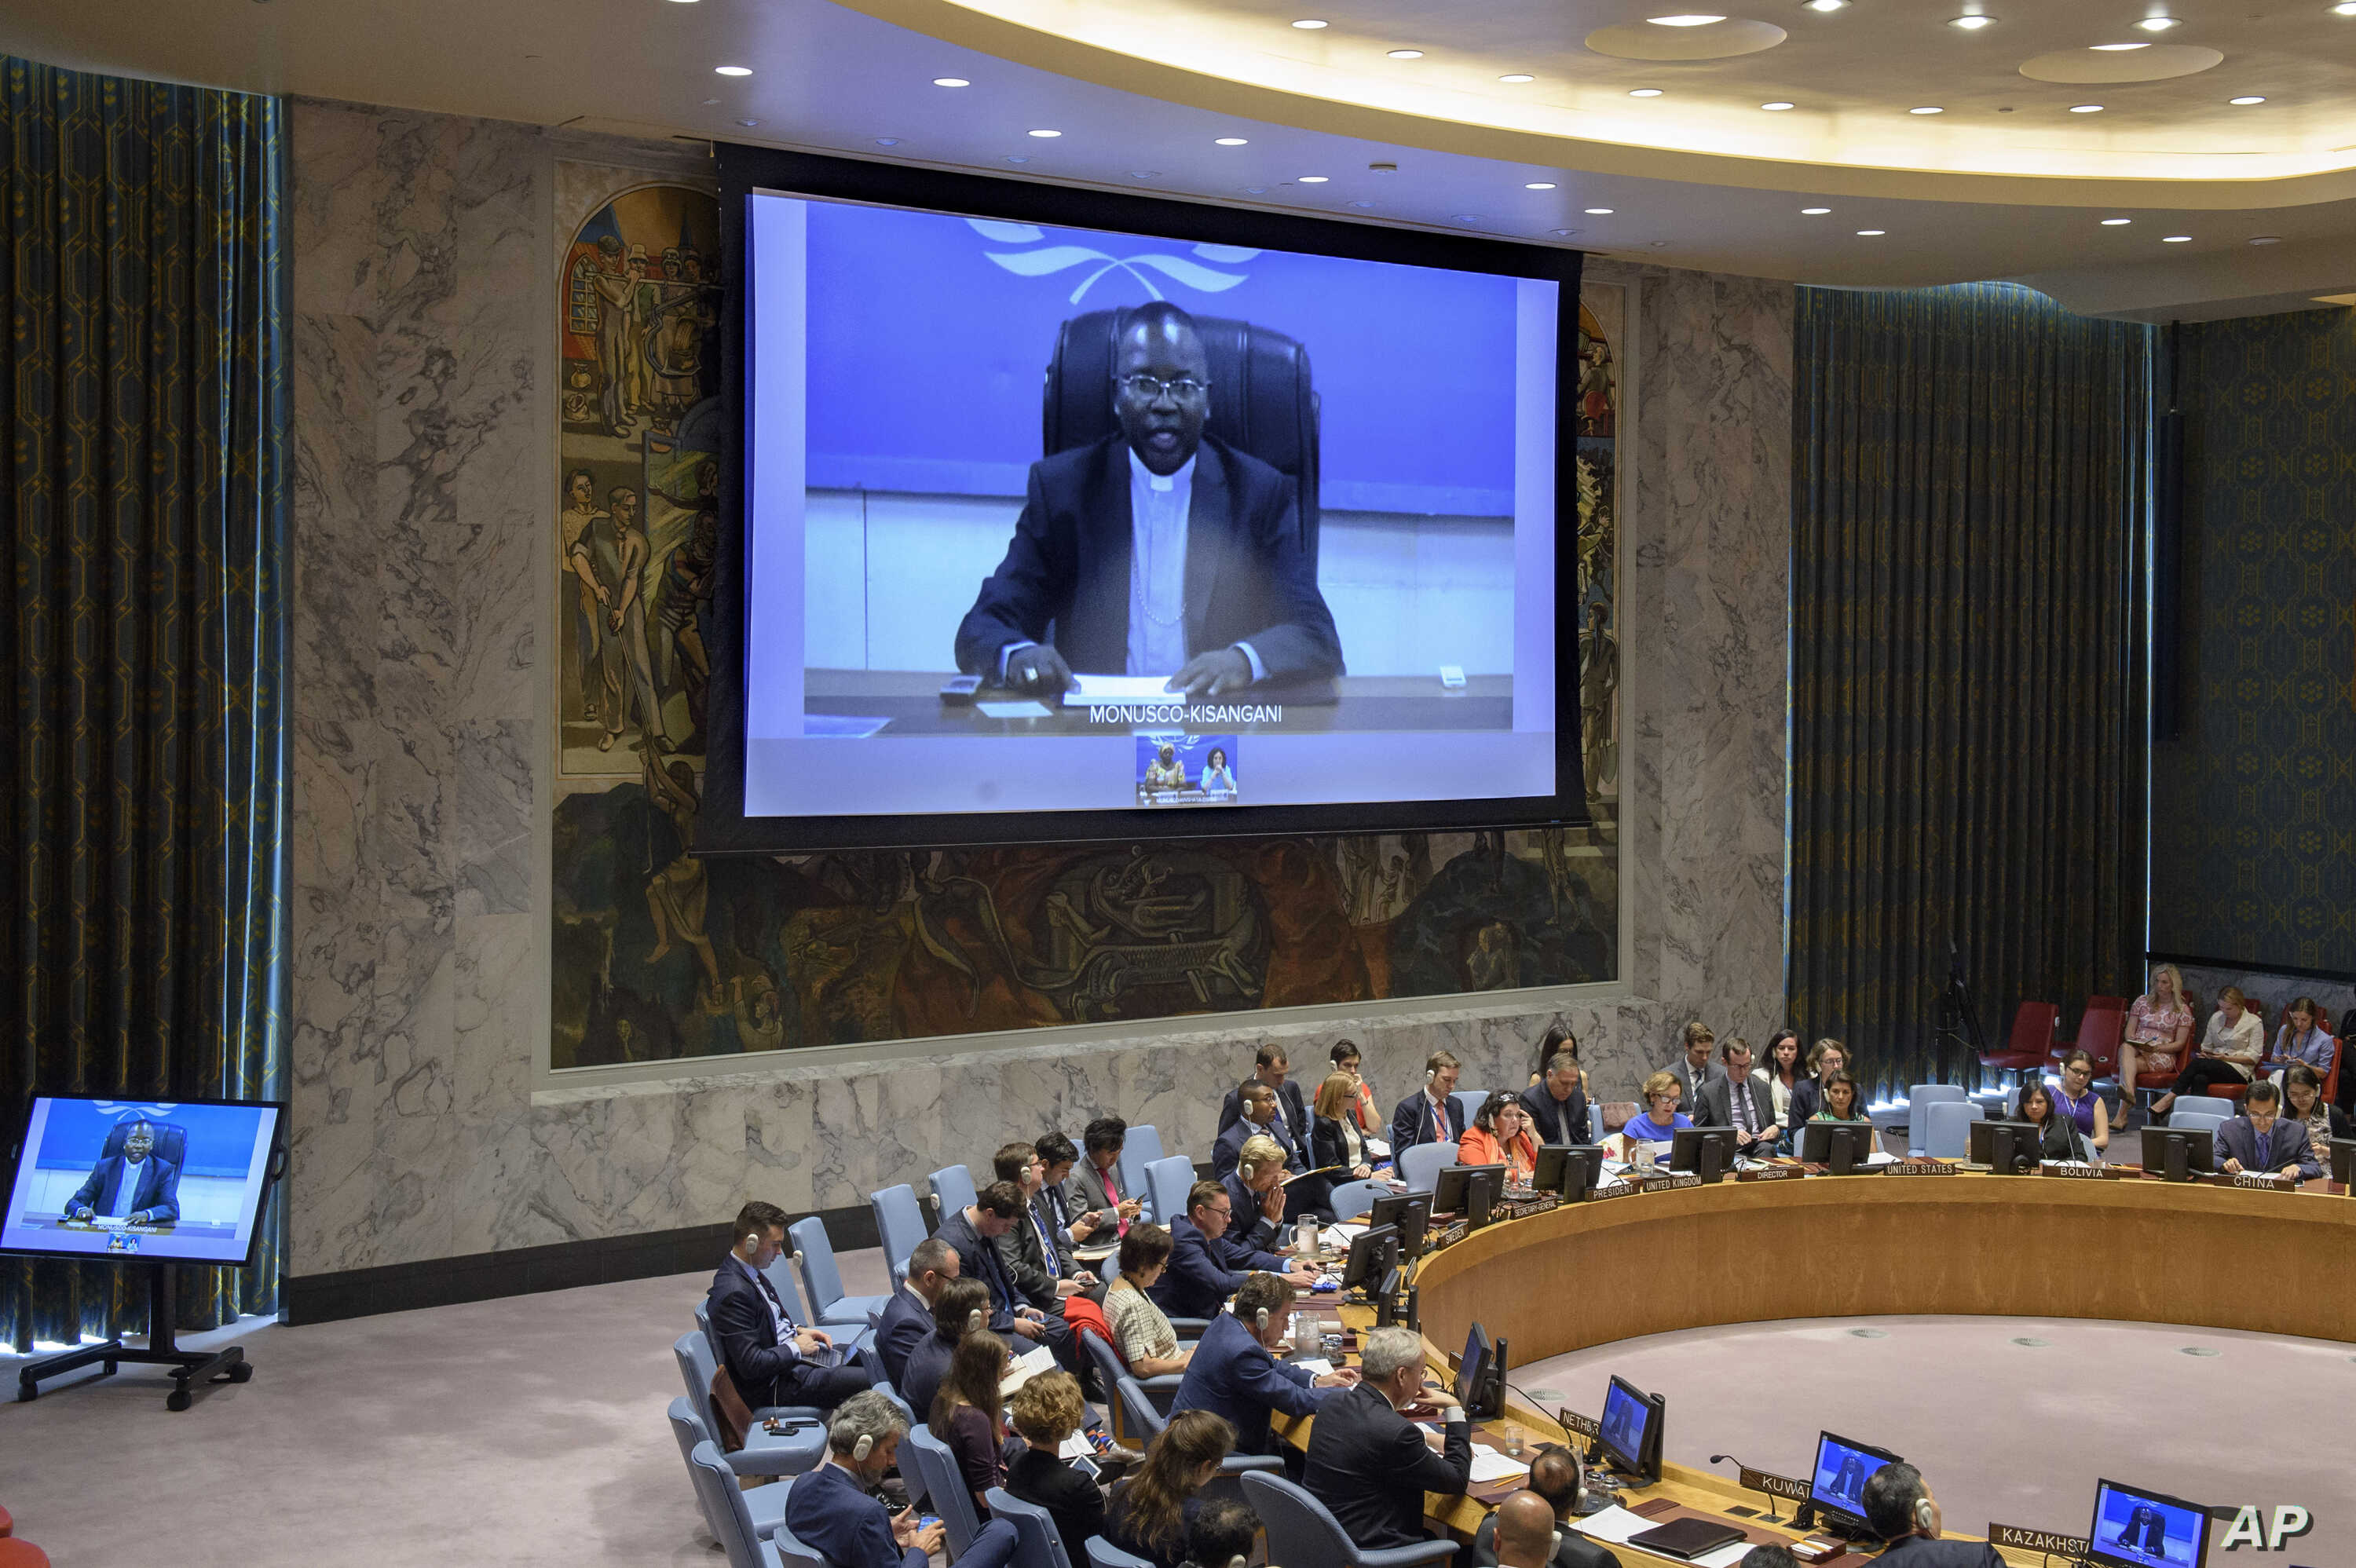 In this UN photo, Marcel Utembi, on screen, president of the National Episcopal Conference of the Congo, addresses the Security Council on the situation concerning the Democratic Republic of the Congo.